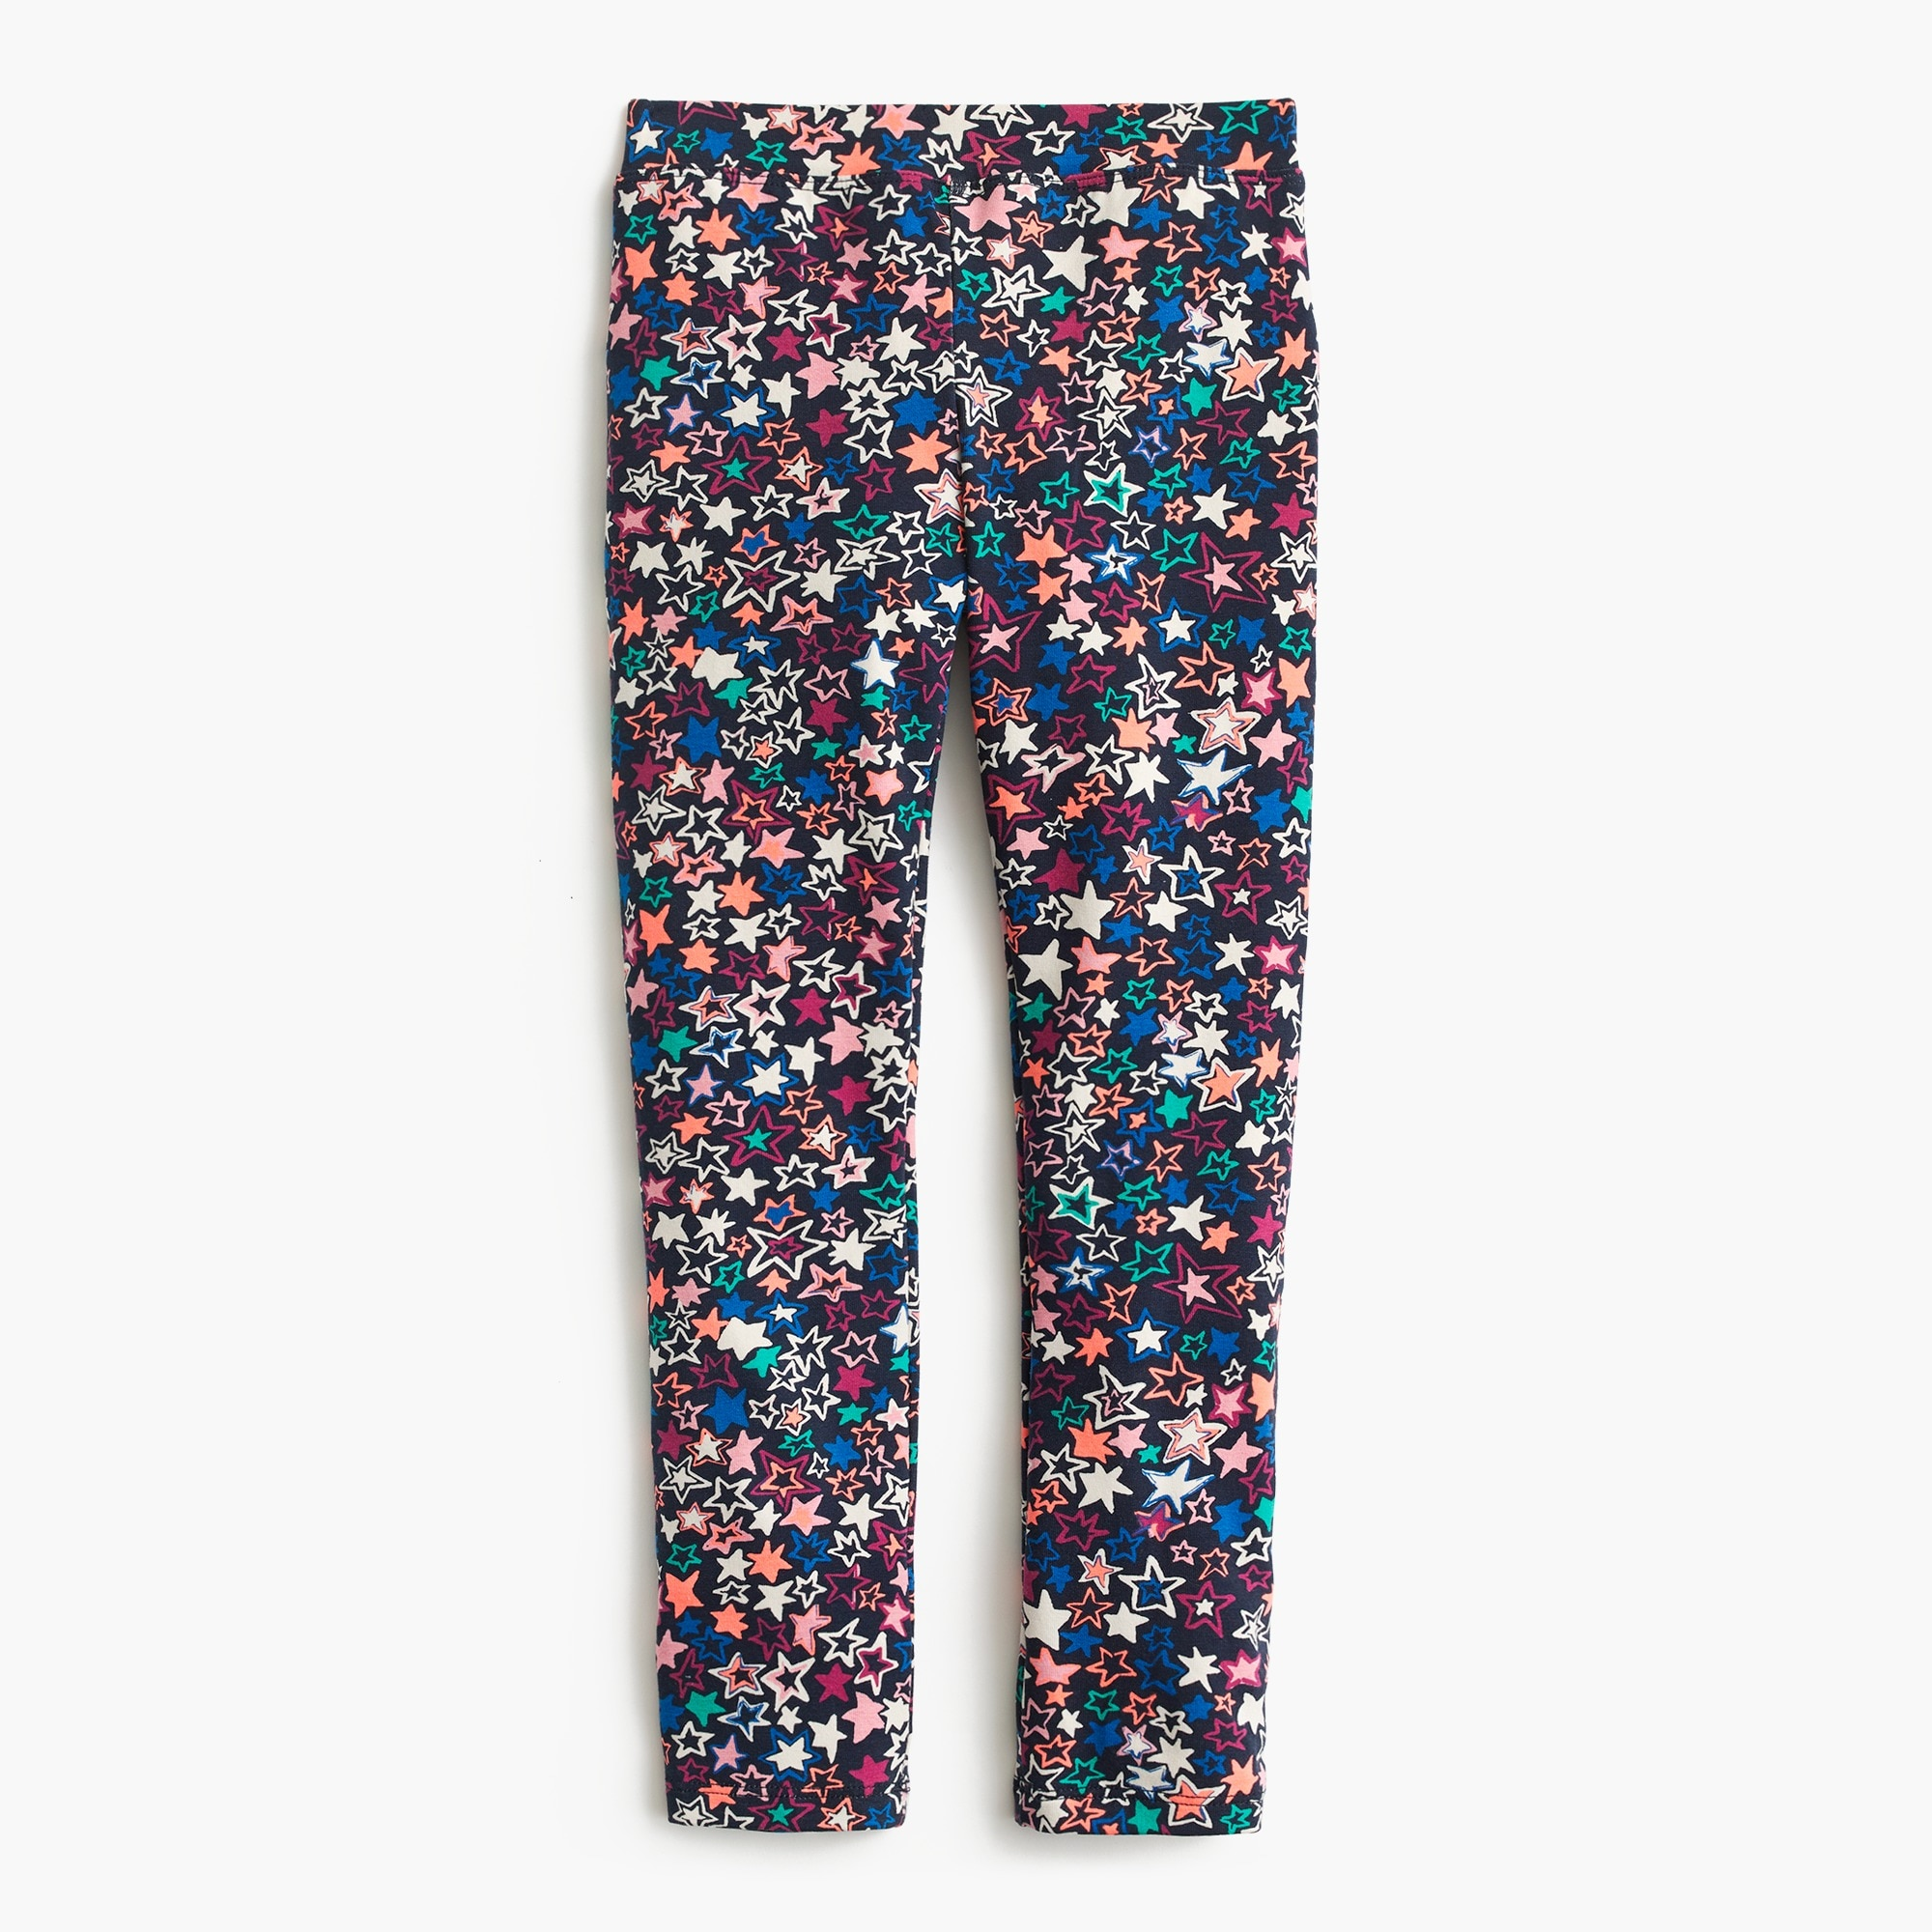 Girls' everyday leggings in stars